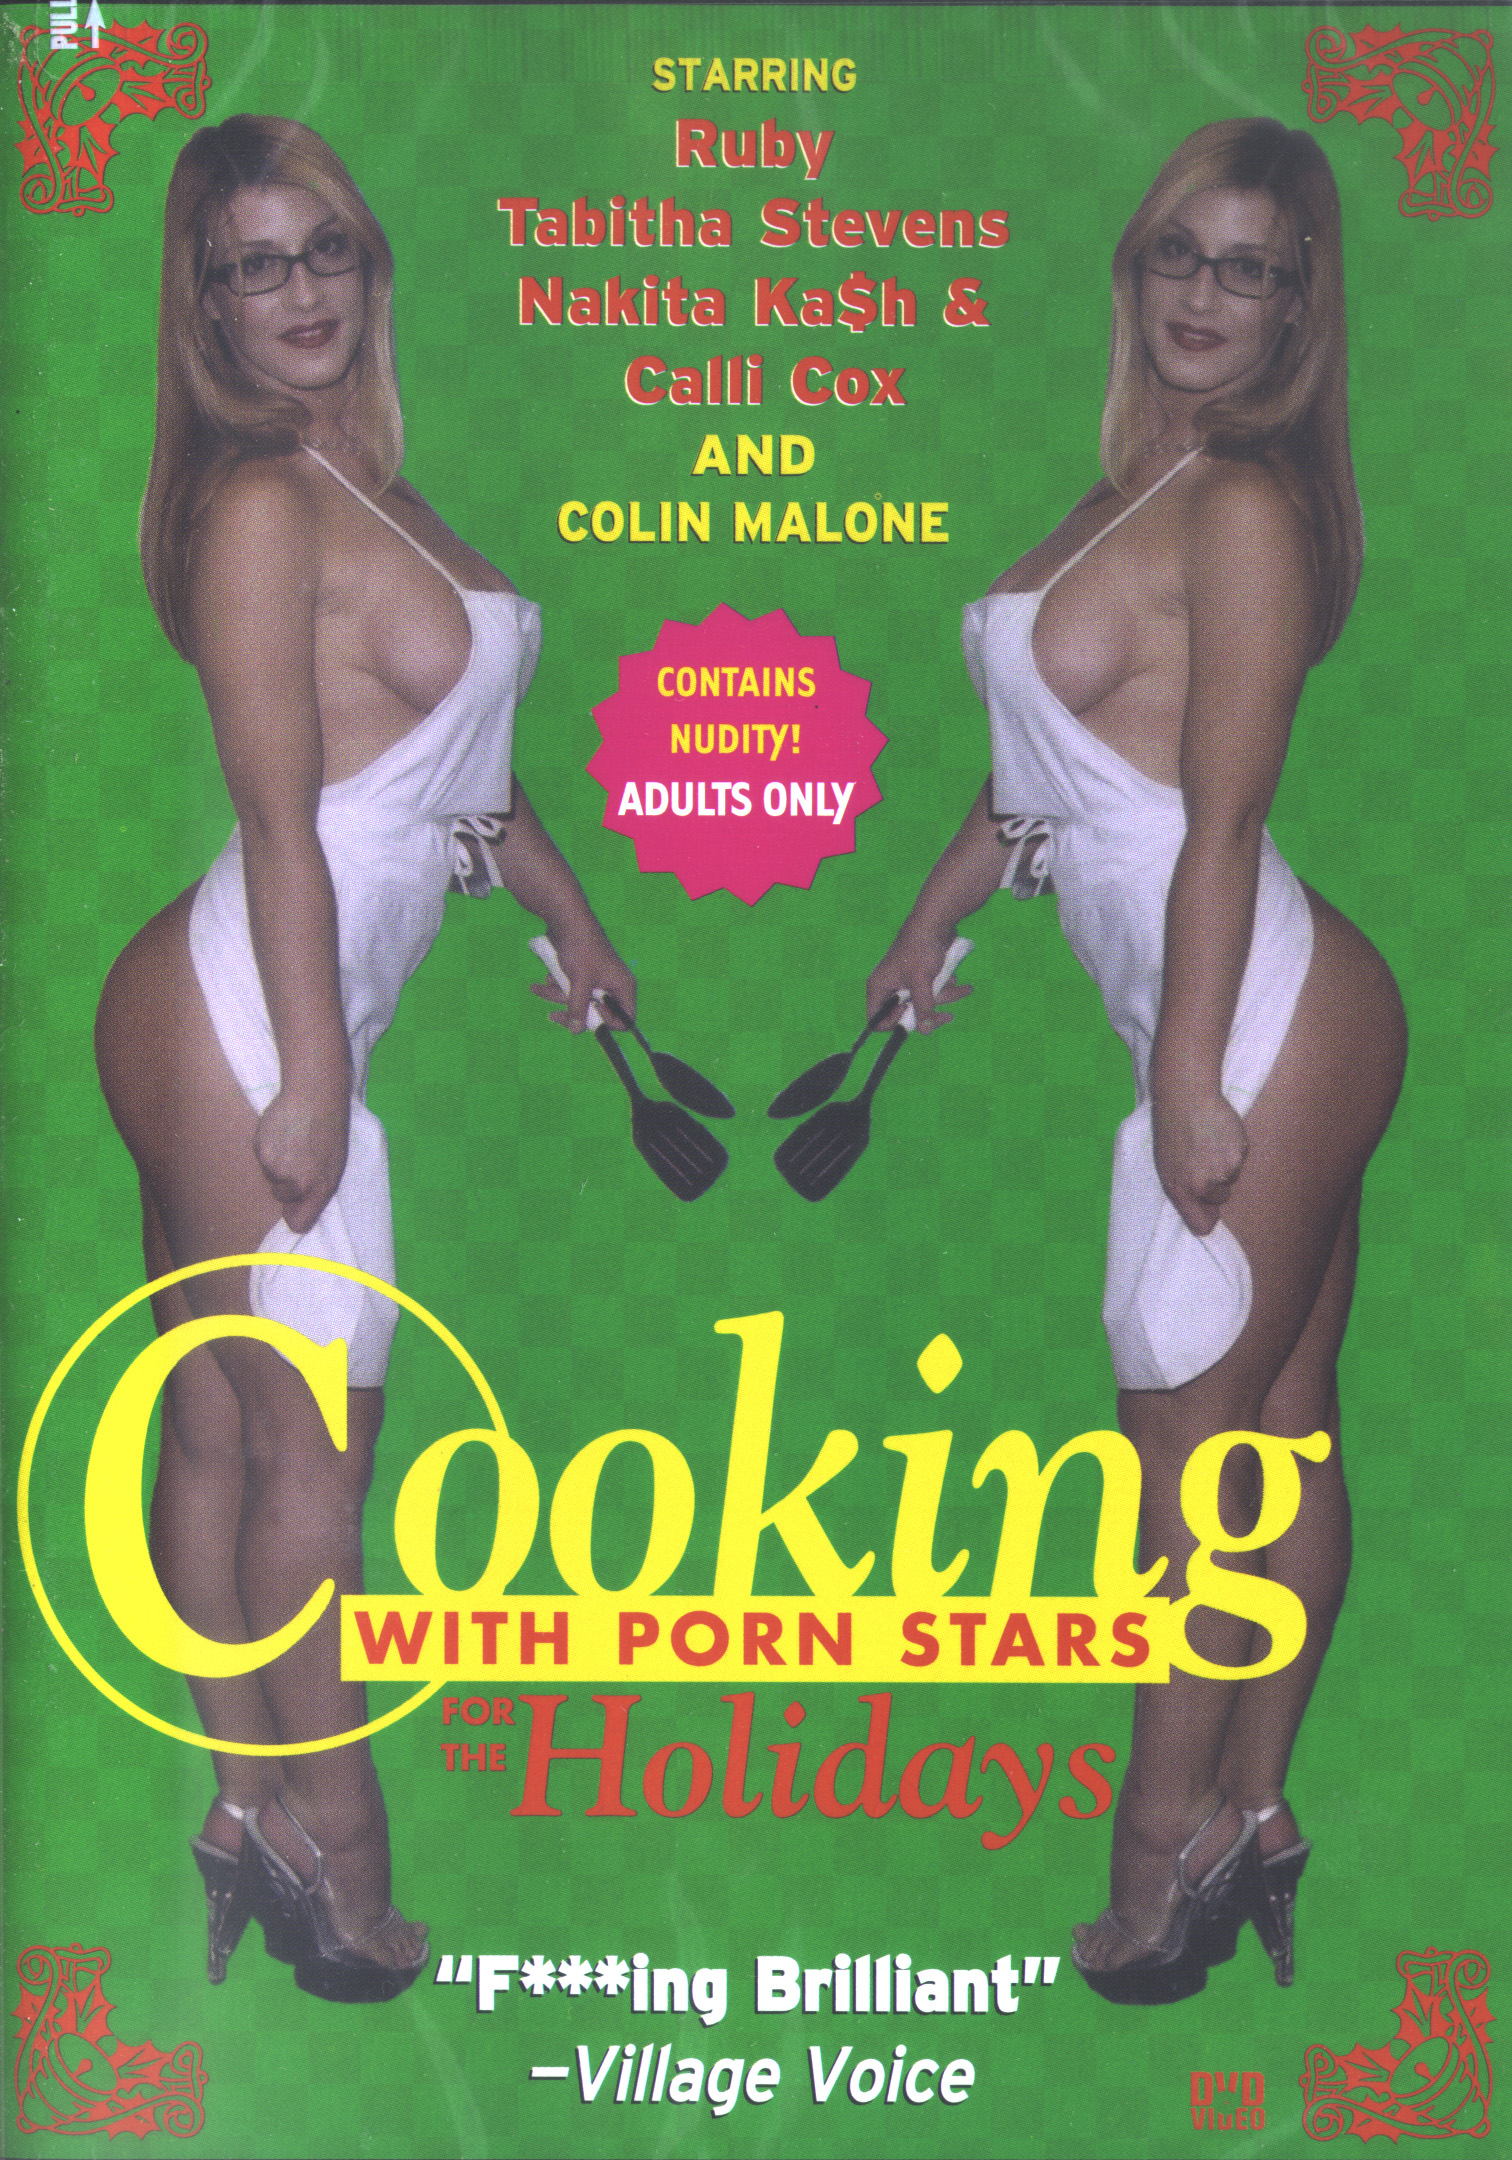 Cooking With Porn Stars for the Holidays